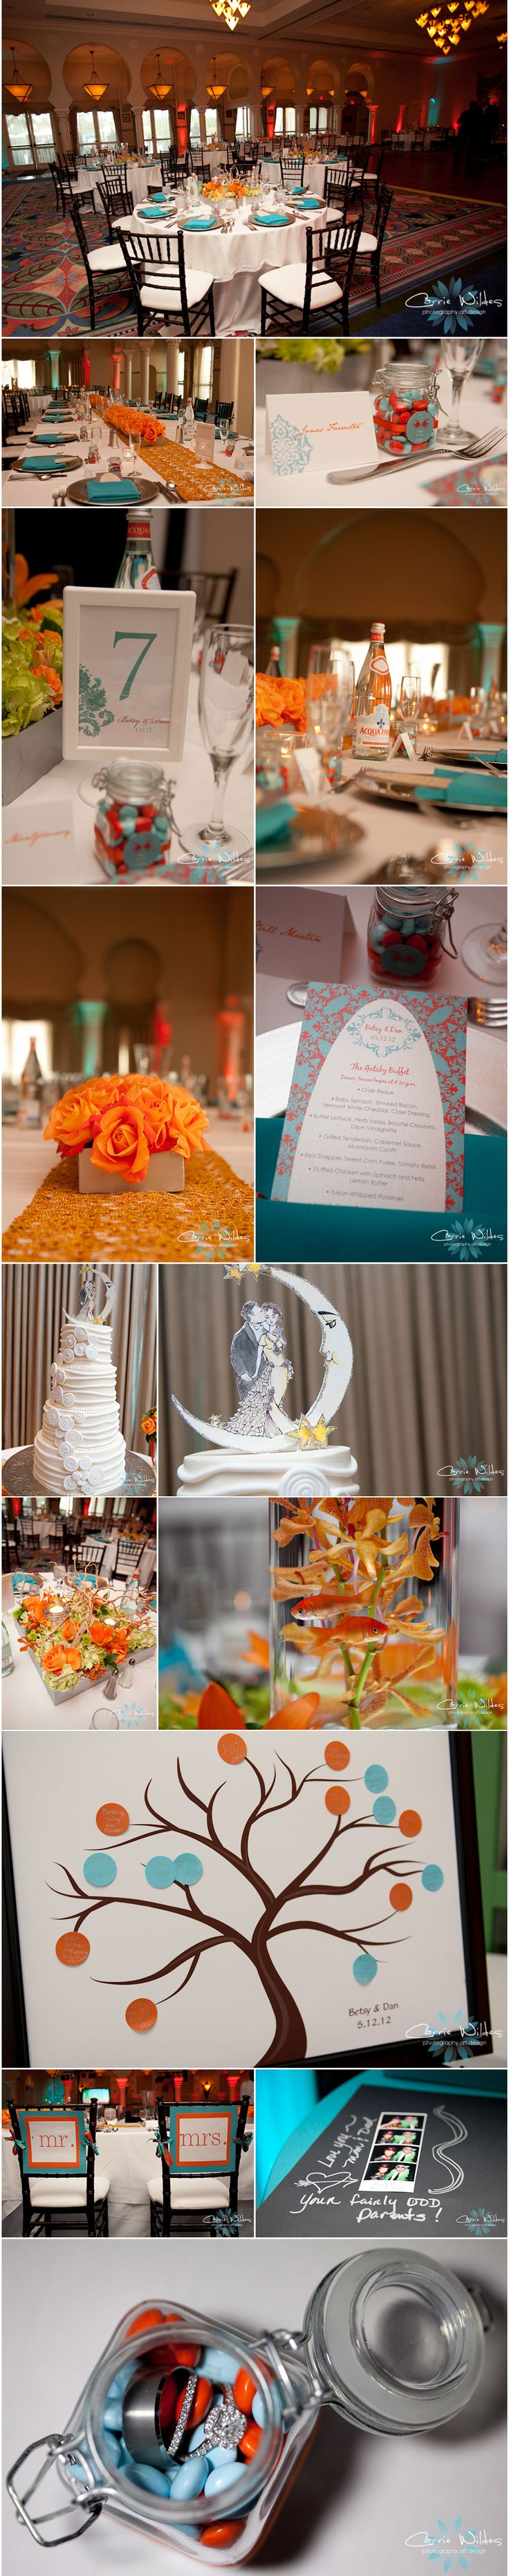 #orange and #aqua #wedding details! sign in tree, goldfish #renaissance Vinoy #st pete: Aqua And Orange Wedding Cakes, Orange Flower, Orange And Aqua Wedding, Color, Renaissance Vinoy, Aqua Orange Wedding, Orange Aqua, Goldfish Renaissance, Wedding Details